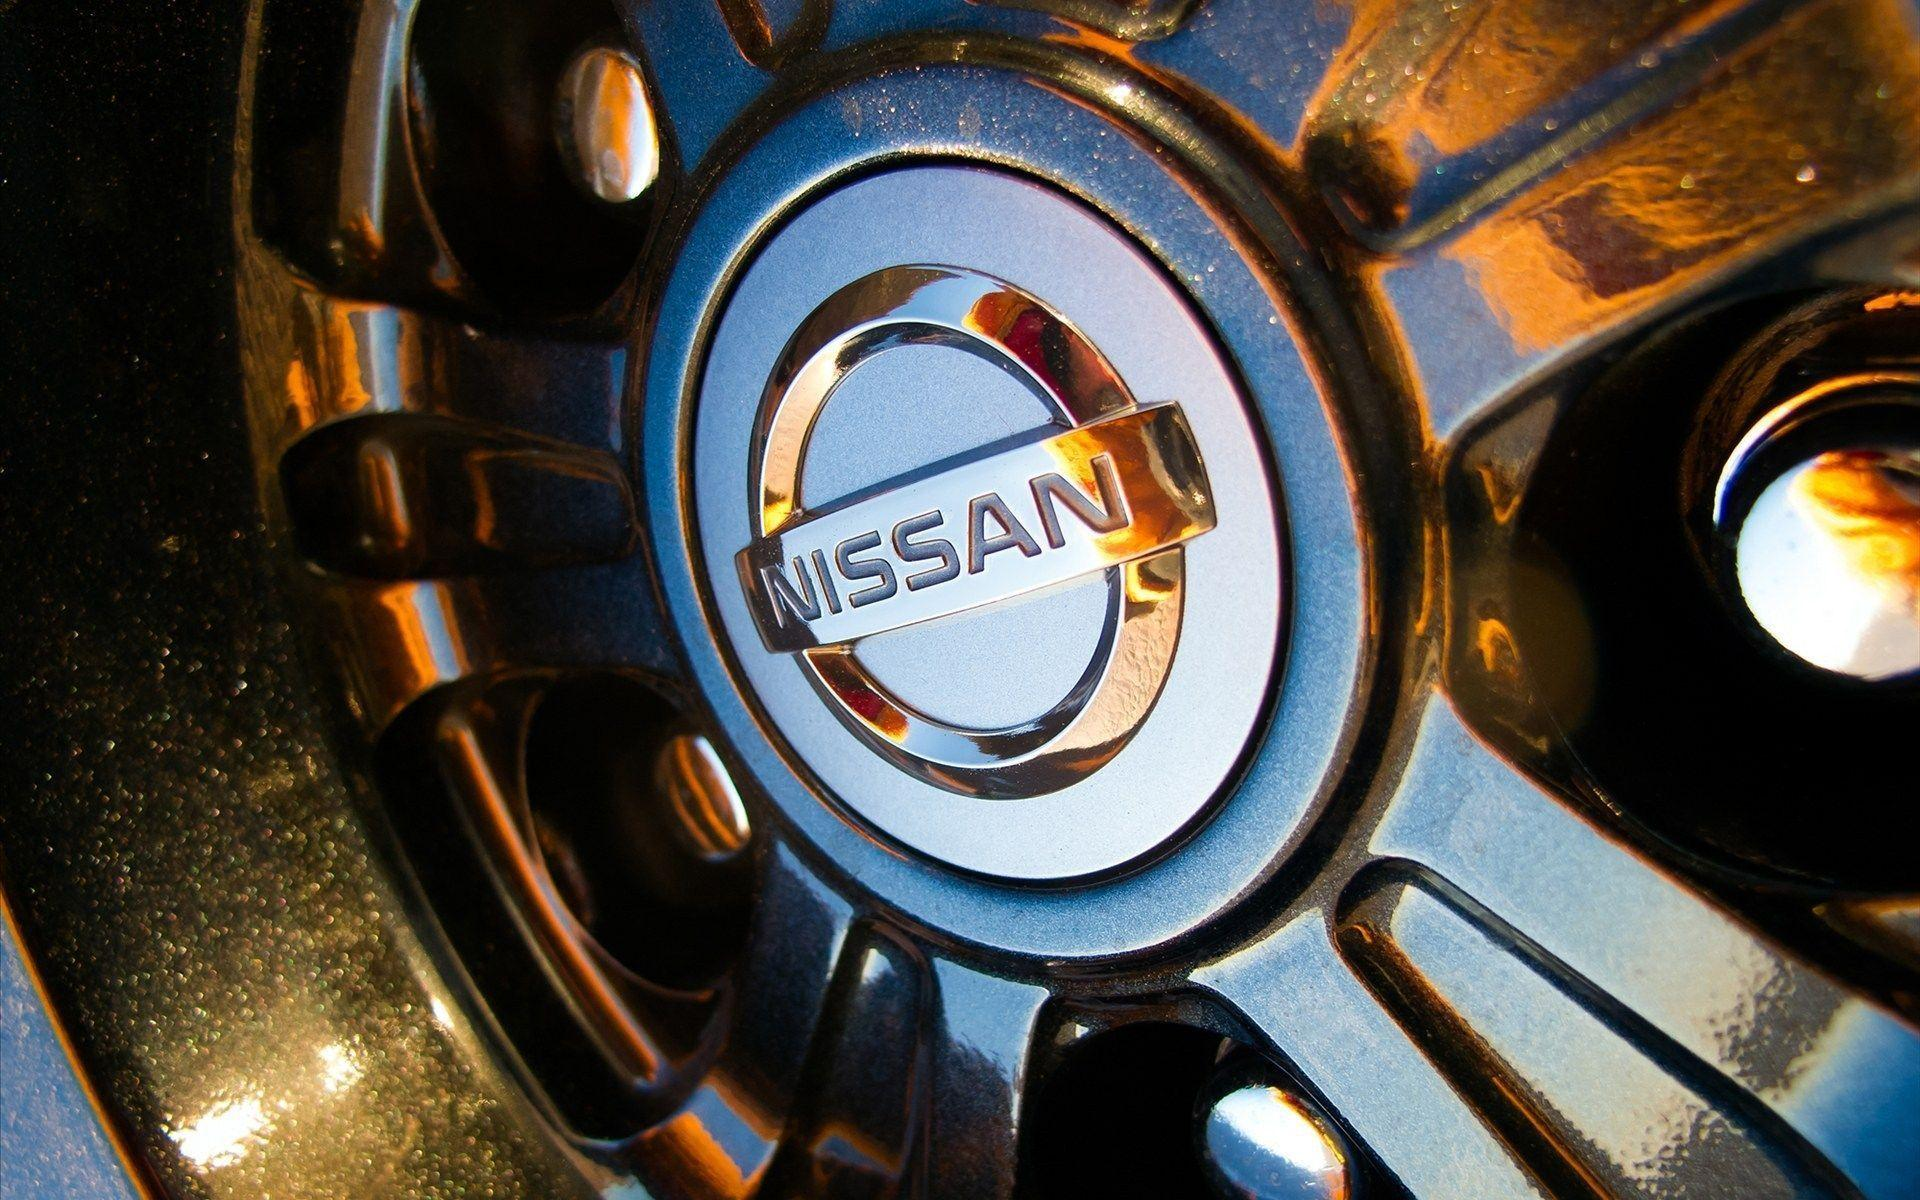 Nissan Logo on Wheel HD Wallpaper Download Wallpaper from ...